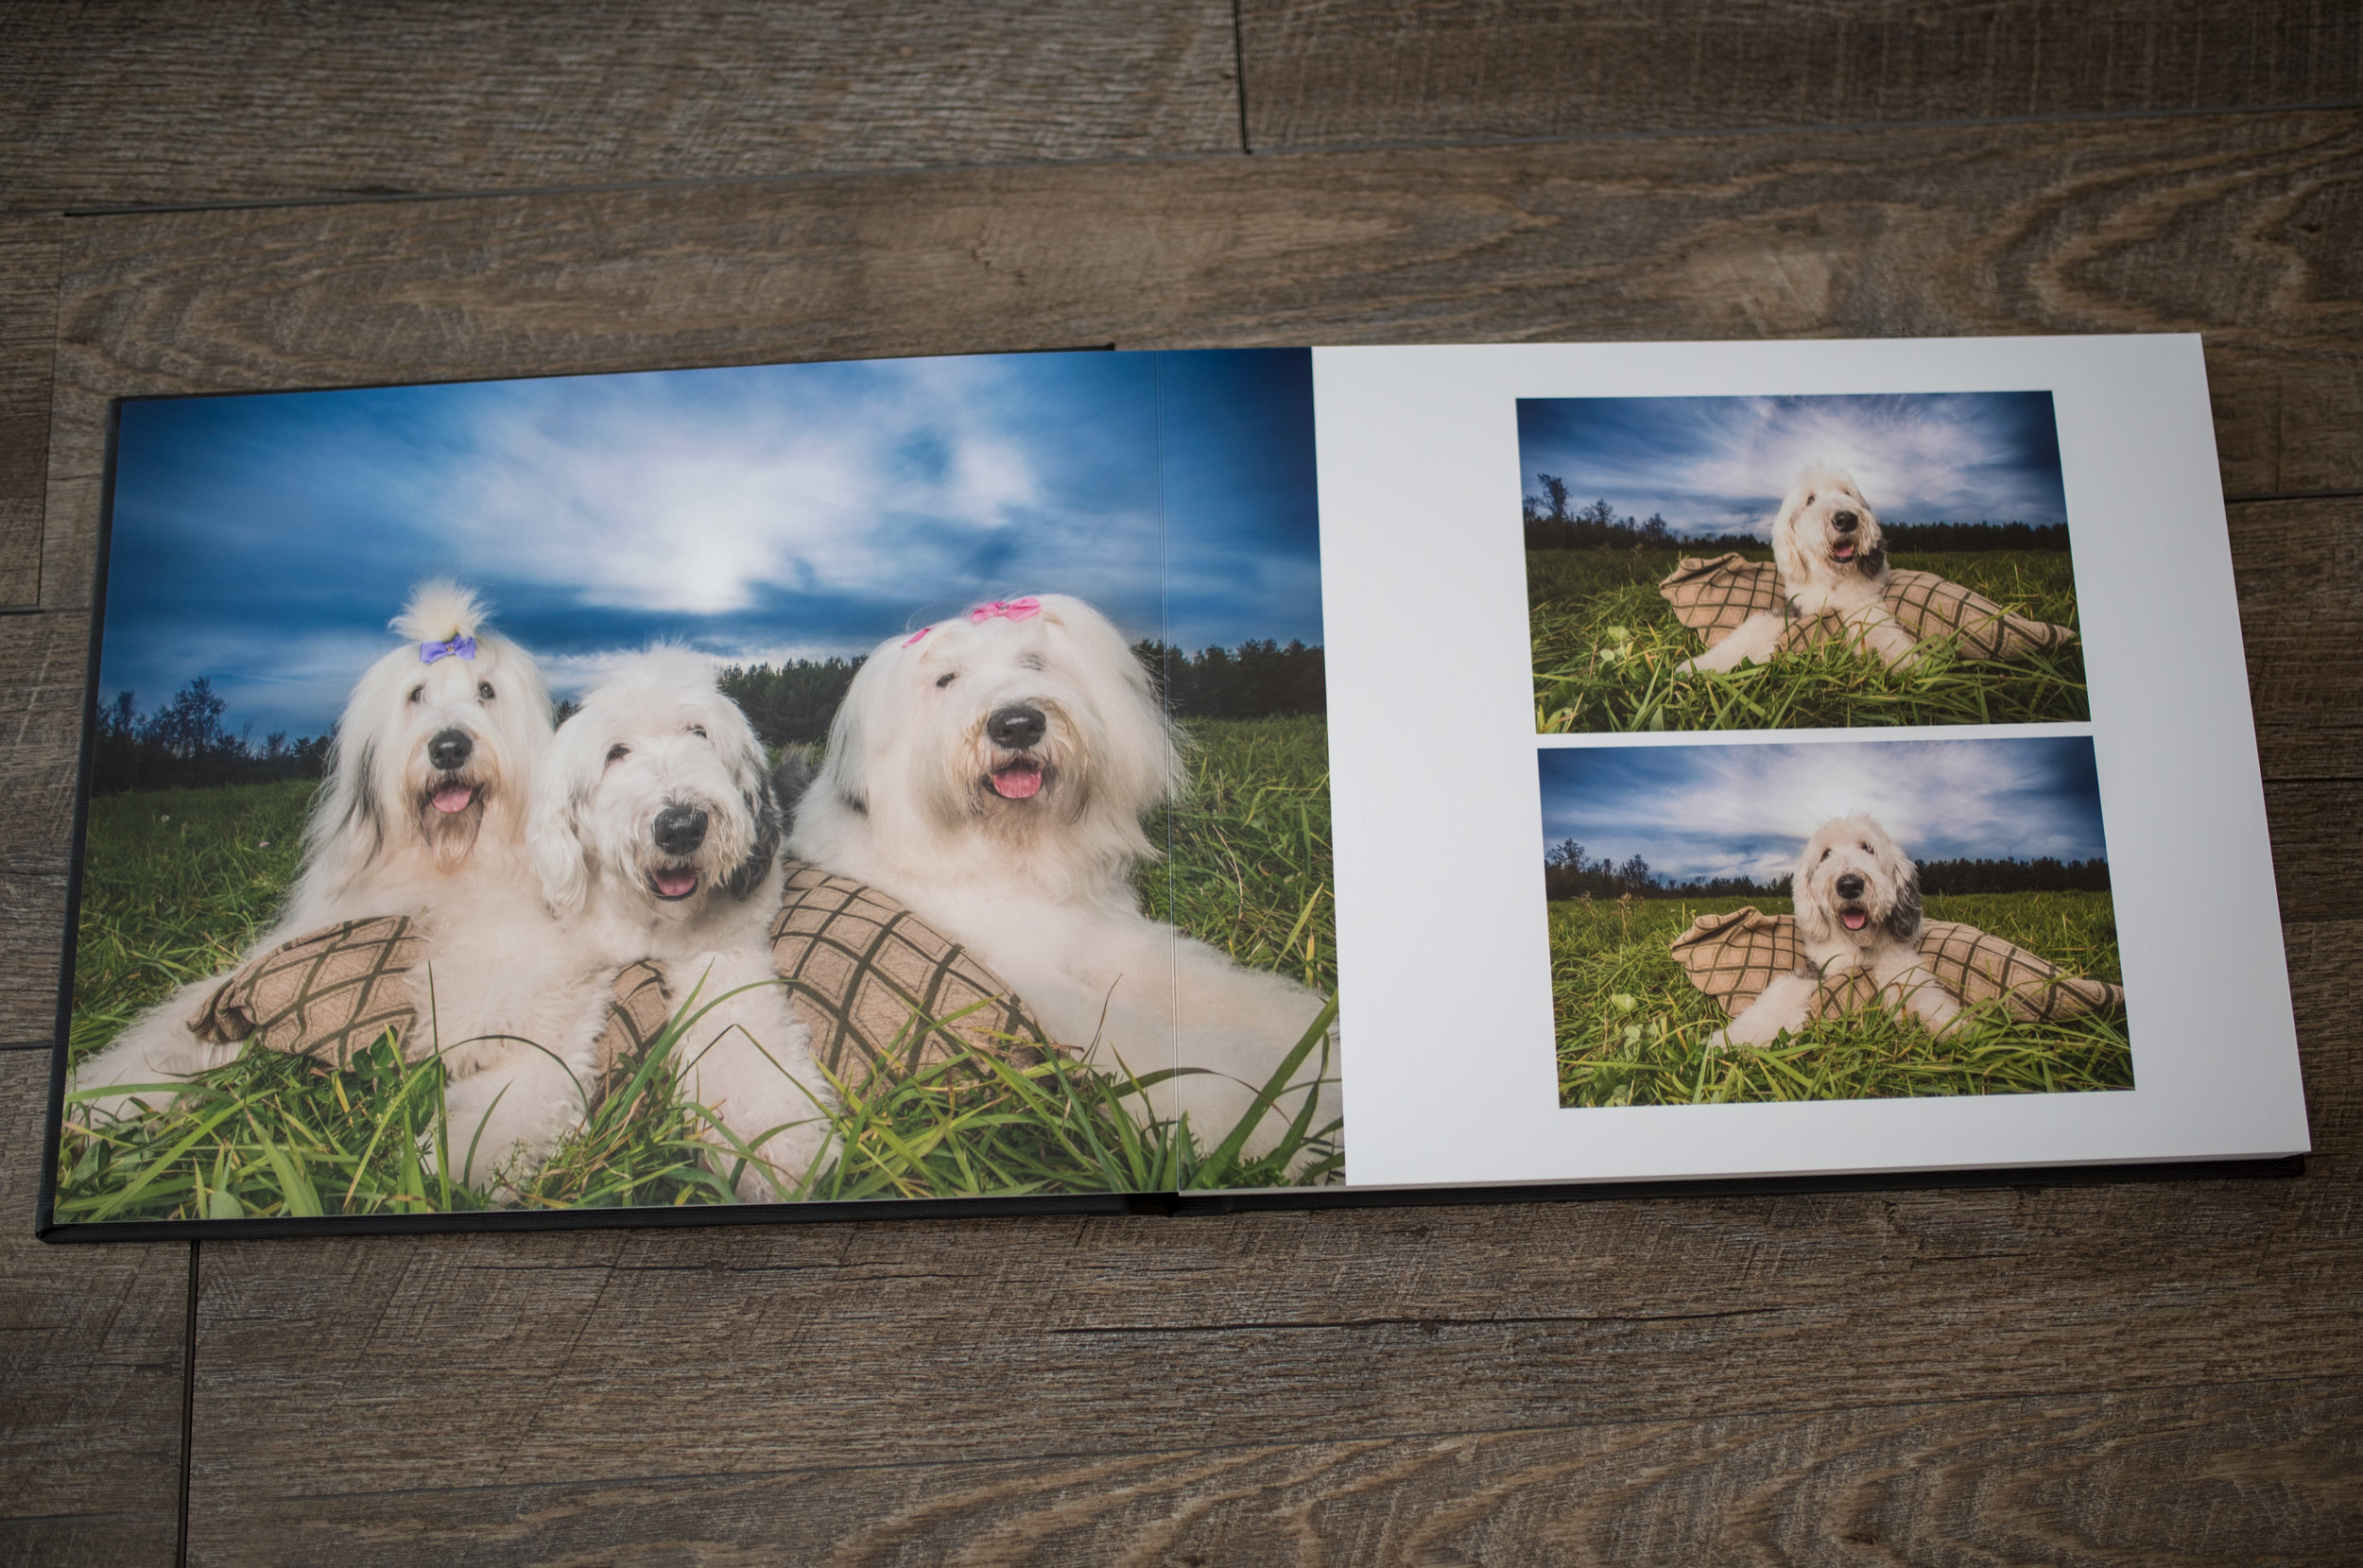 Ottawa dog photogrpaher - Pet Photographer Ottawa - Salt Photography Ottawa.jpg